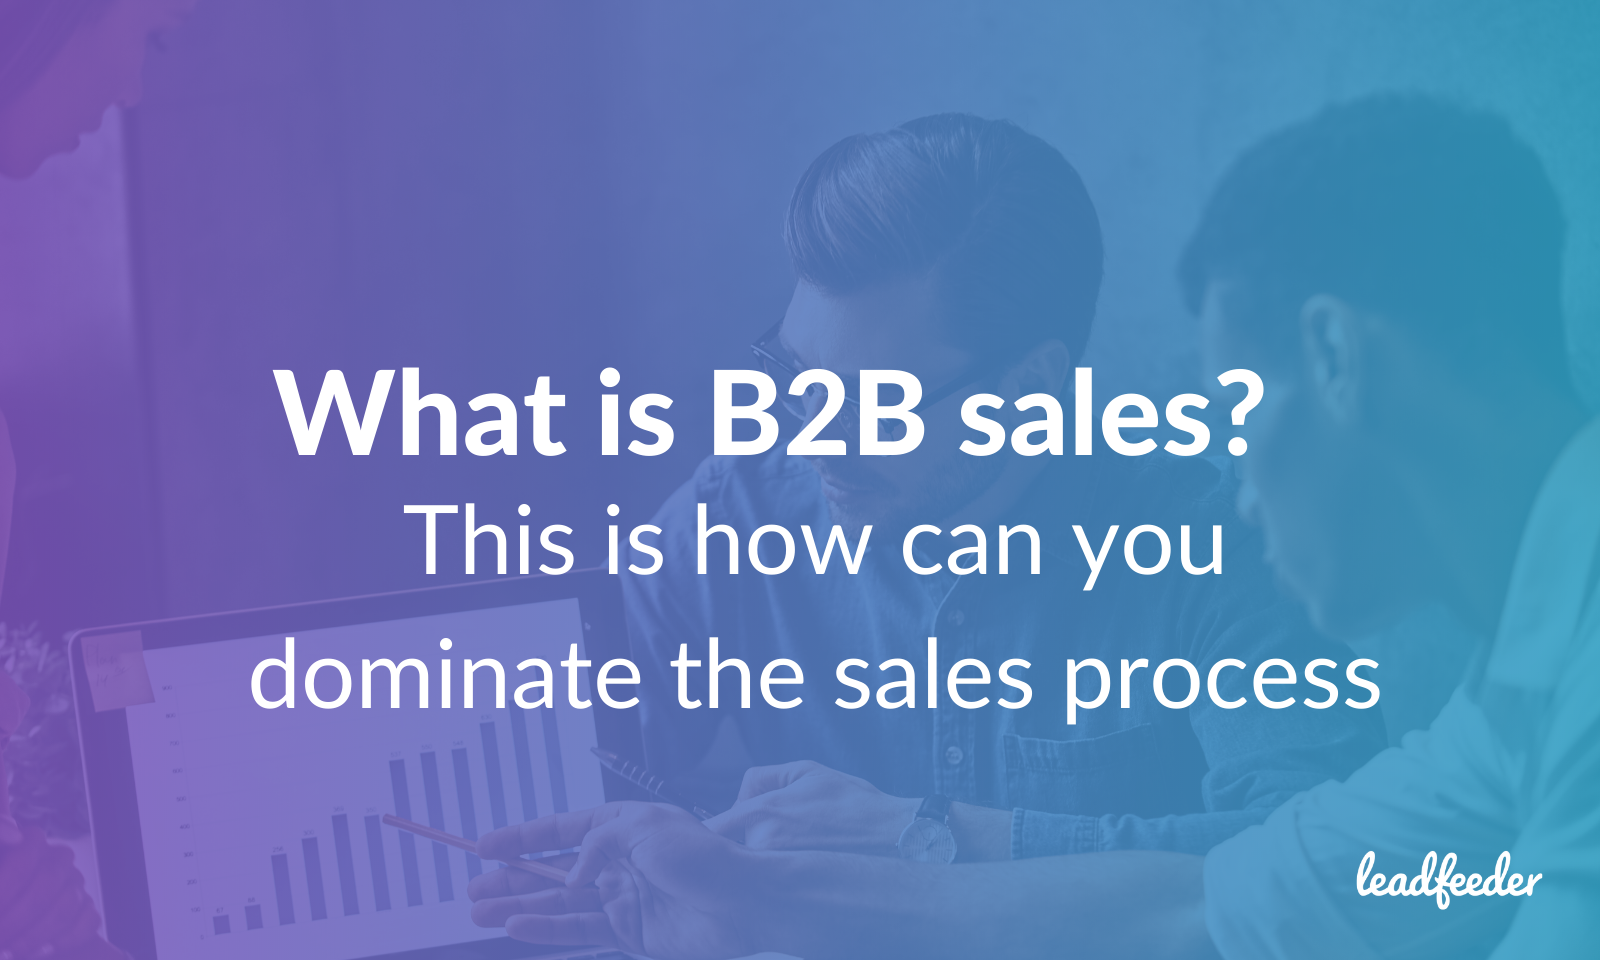 What is B2B sales?